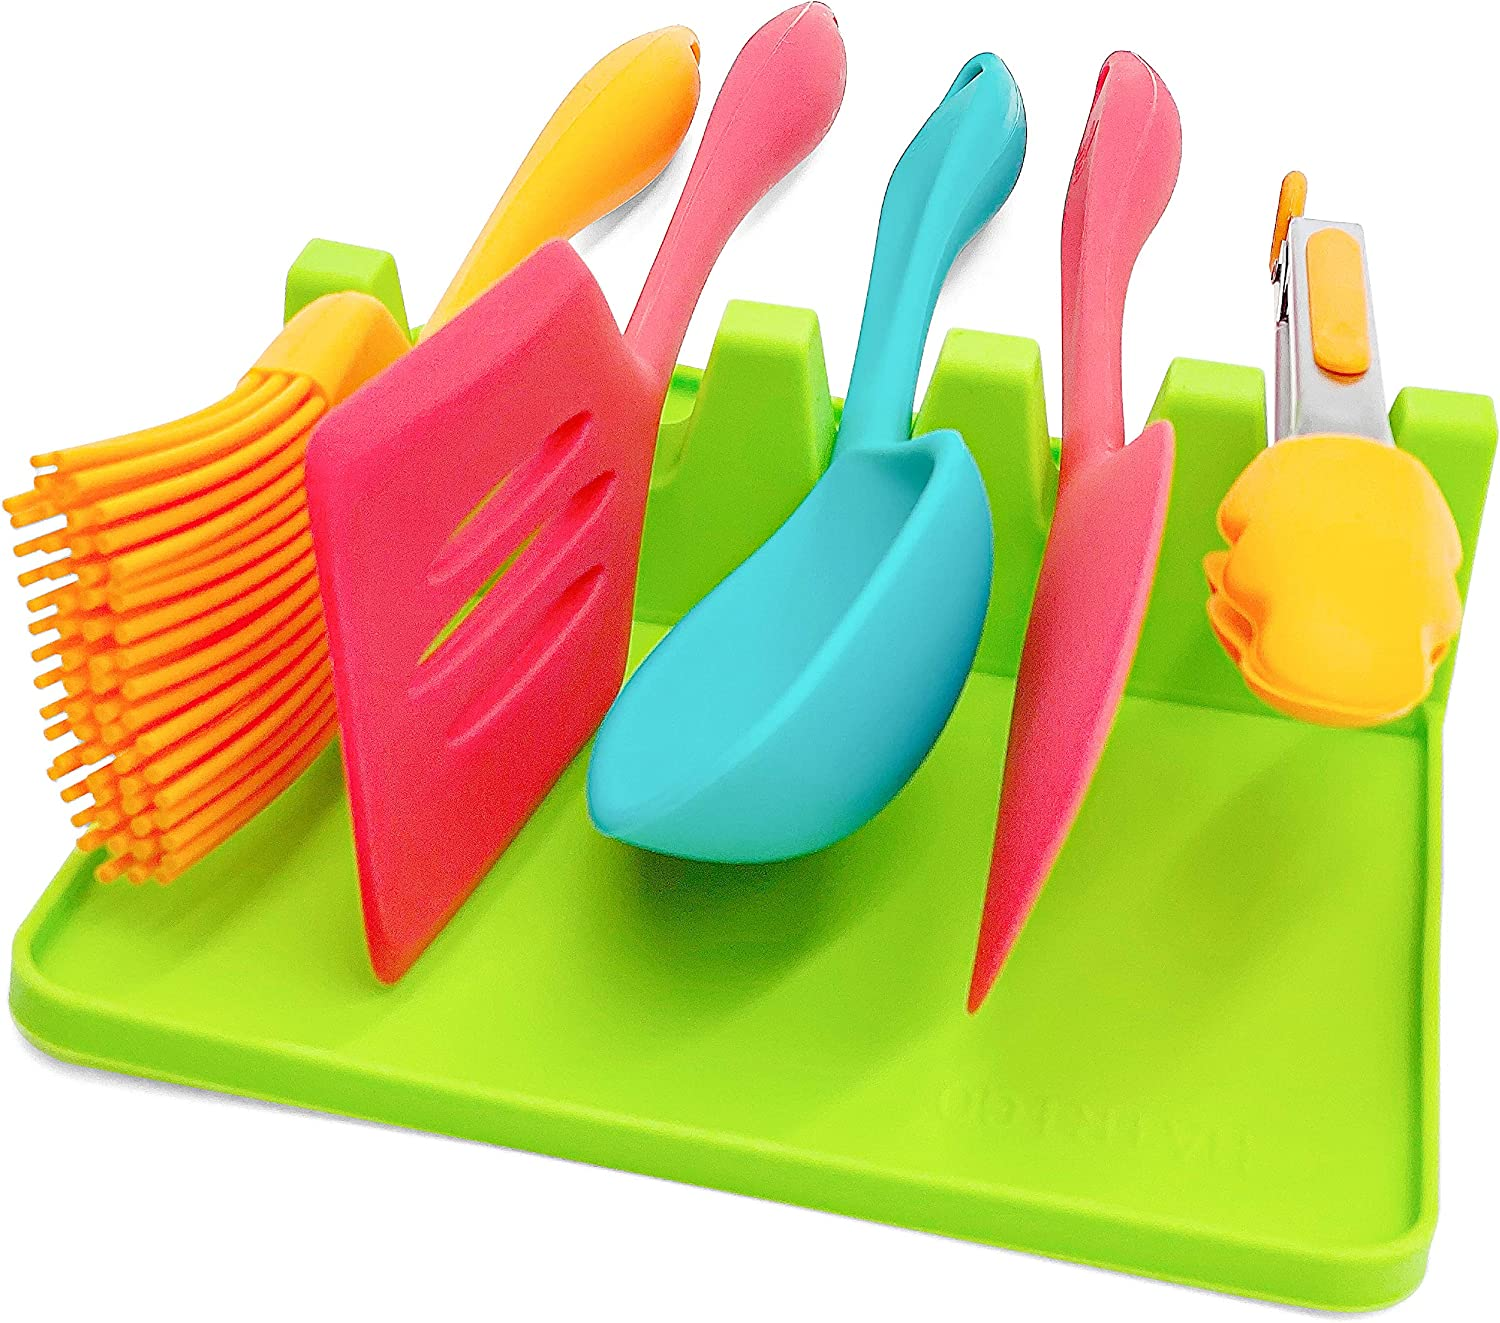 Large Silicone Spoon Rest for Kitchen with 5 Slots, Utensil Rest with Drip Pad 7 x 7 x 2 inch and more Slots (5 vs. 4), Spoon Holder for Stove Top, BBQ Utensil Holder for Spoons, Ladles, Green